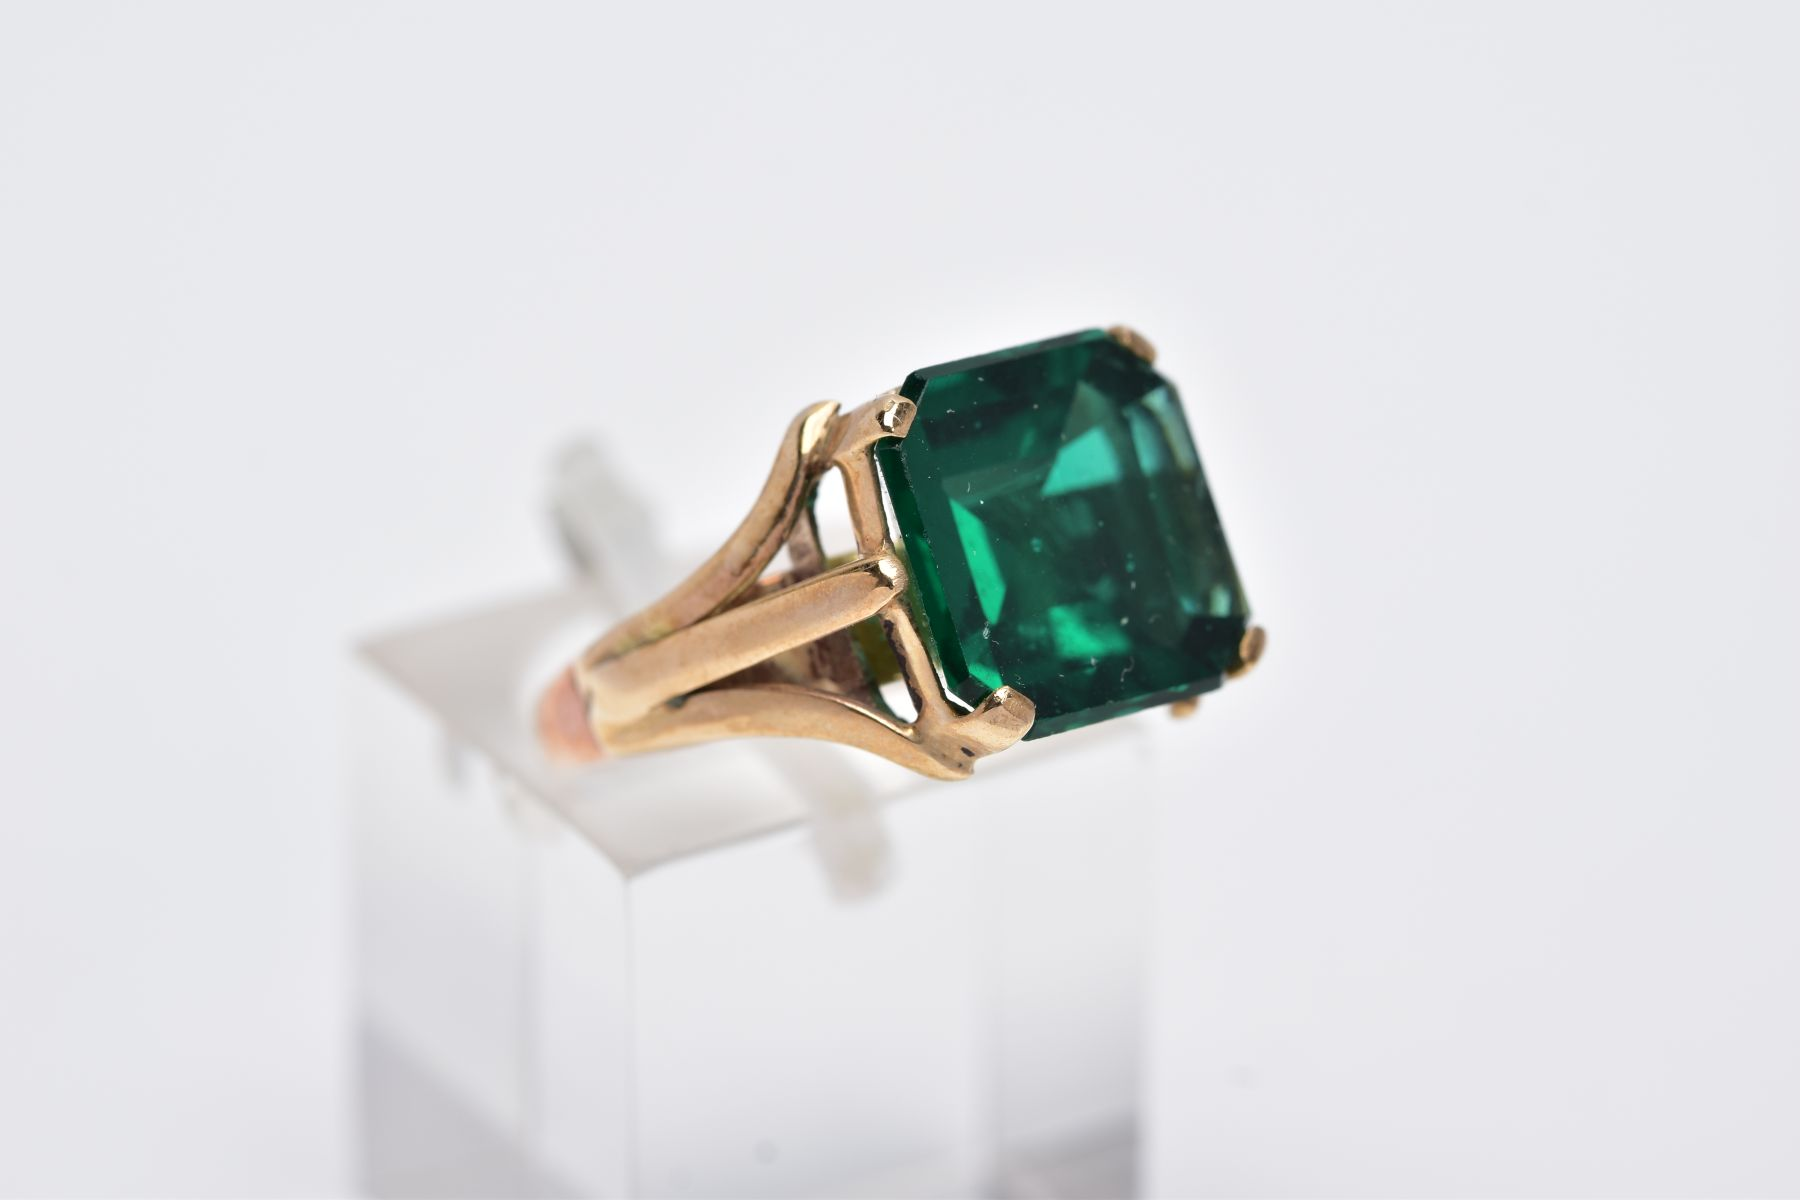 AN EARLY 20TH CENTURY 9CT GOLD SINGLE STONE GREEN PASTE RING, paste stone measuring approximately - Image 4 of 5